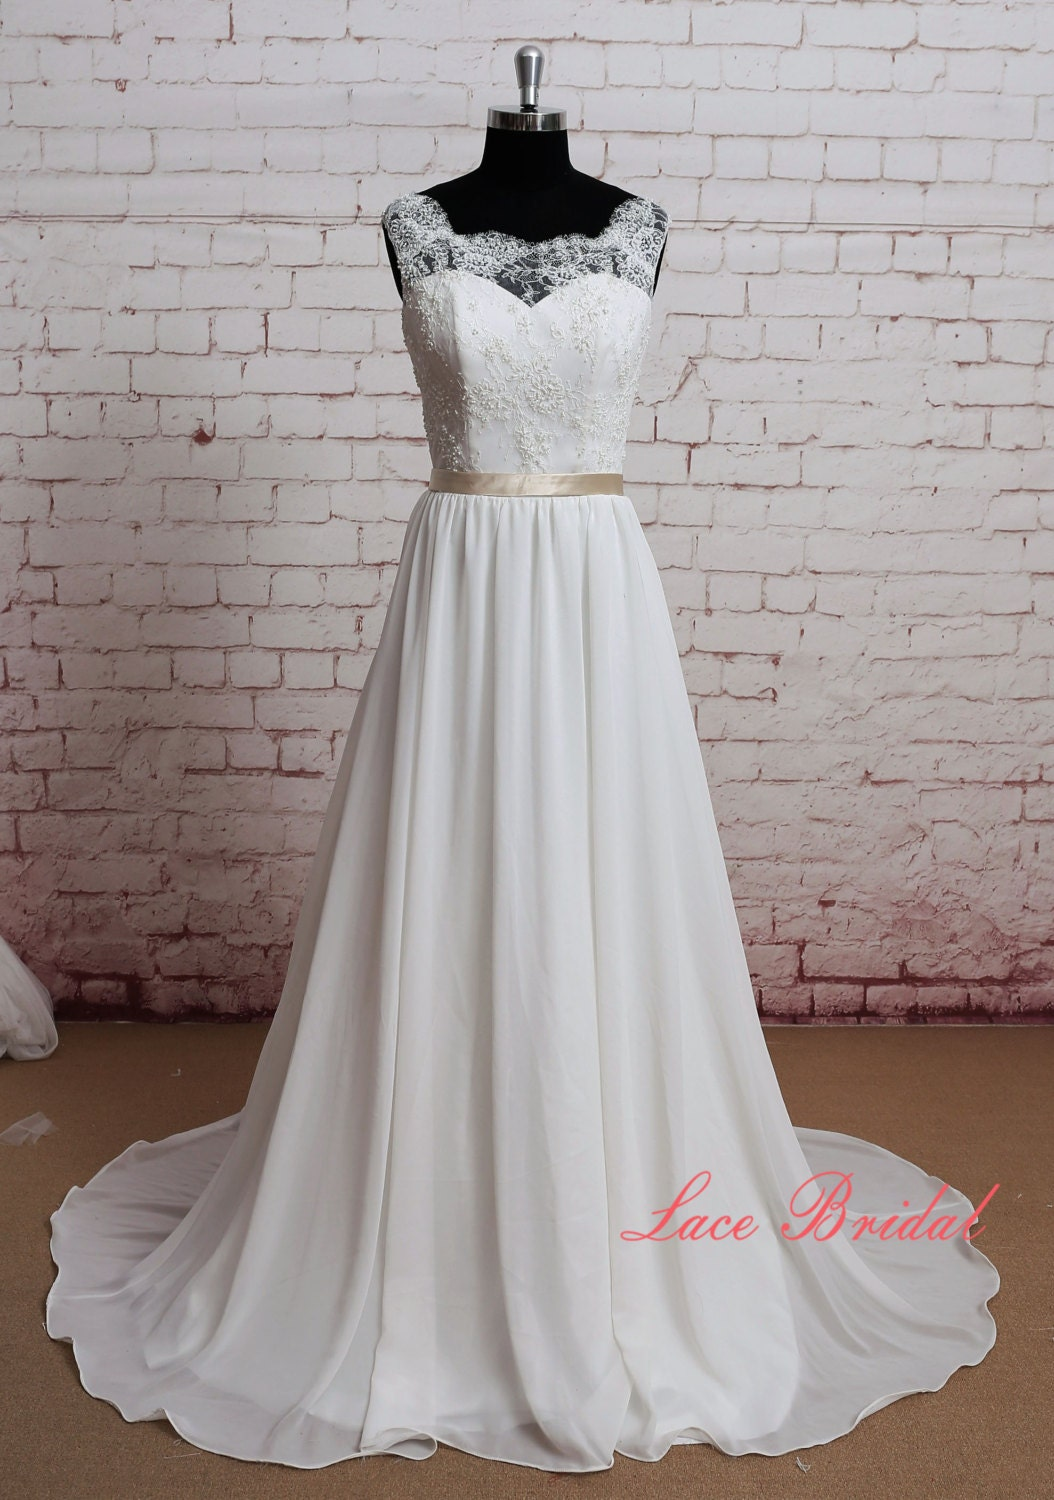 Gorgeous Lace Wedding Dress Sheer Lace Neckline Bridal Gown